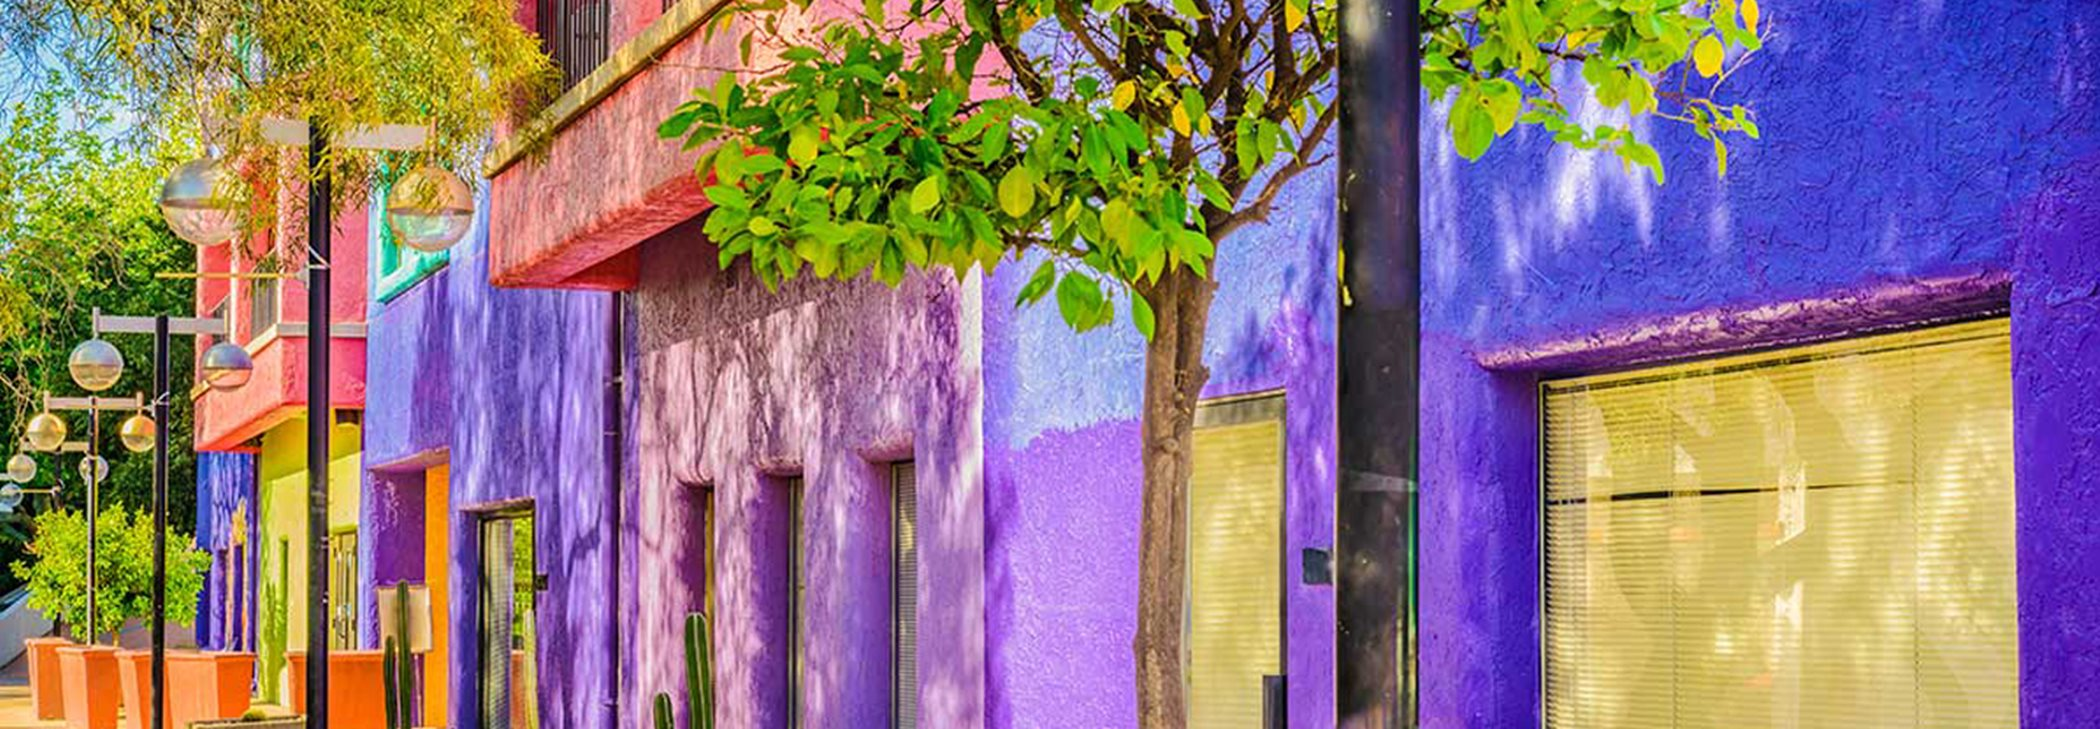 Colorful Adobe Homes